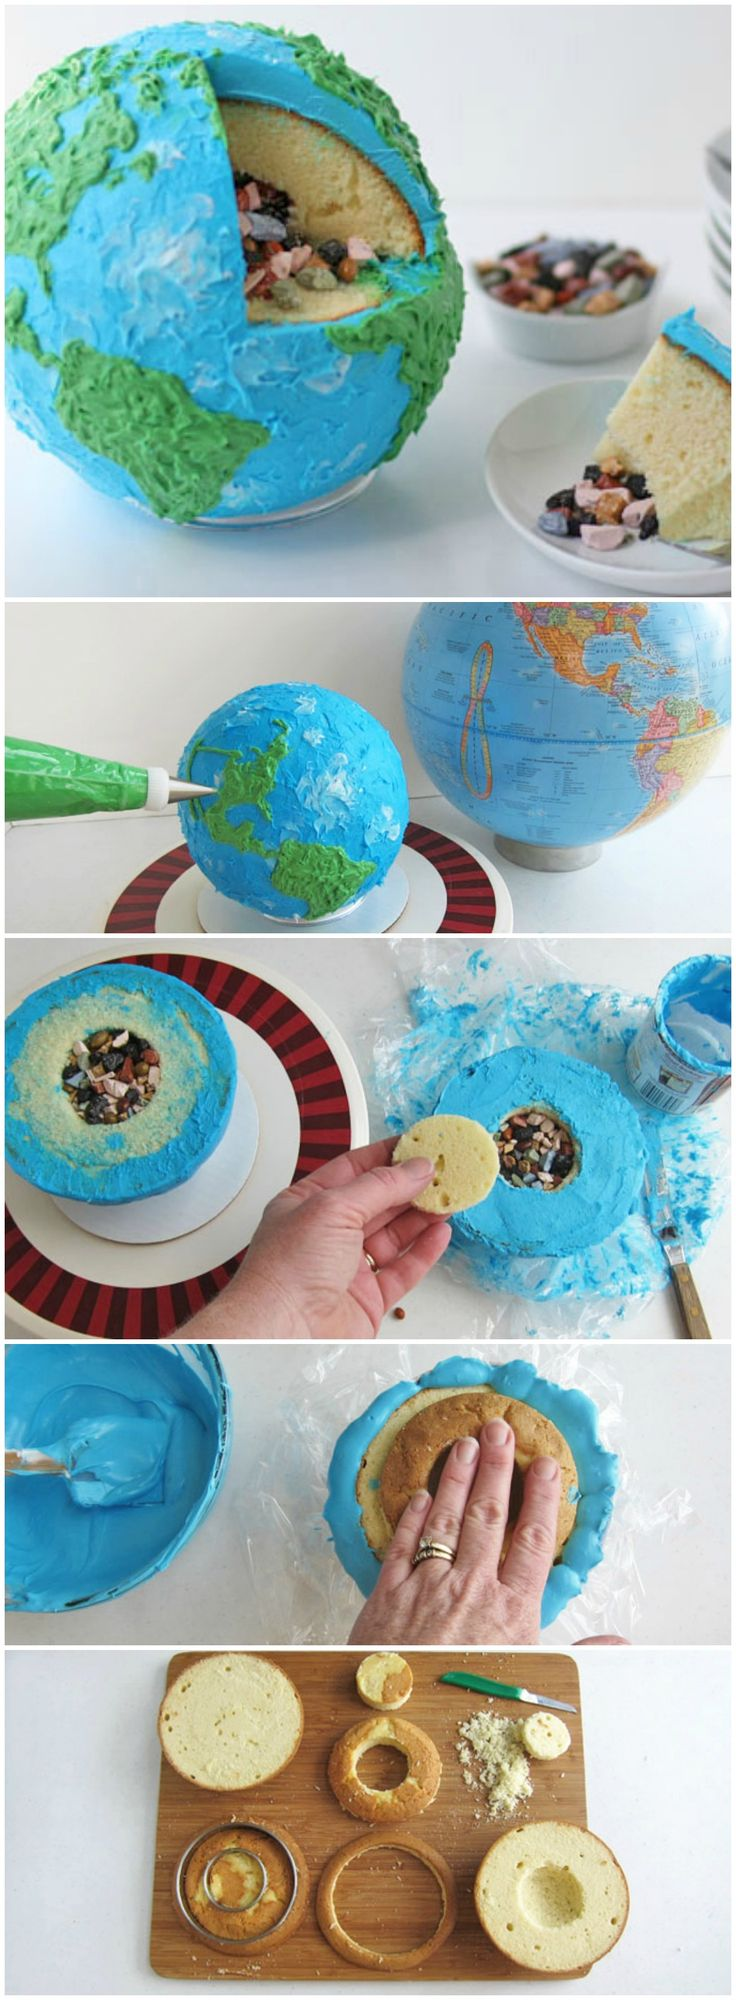 """what if i did something like this and filled it with rock candy so he gets a """"crystal"""" surprise inside the cake?"""